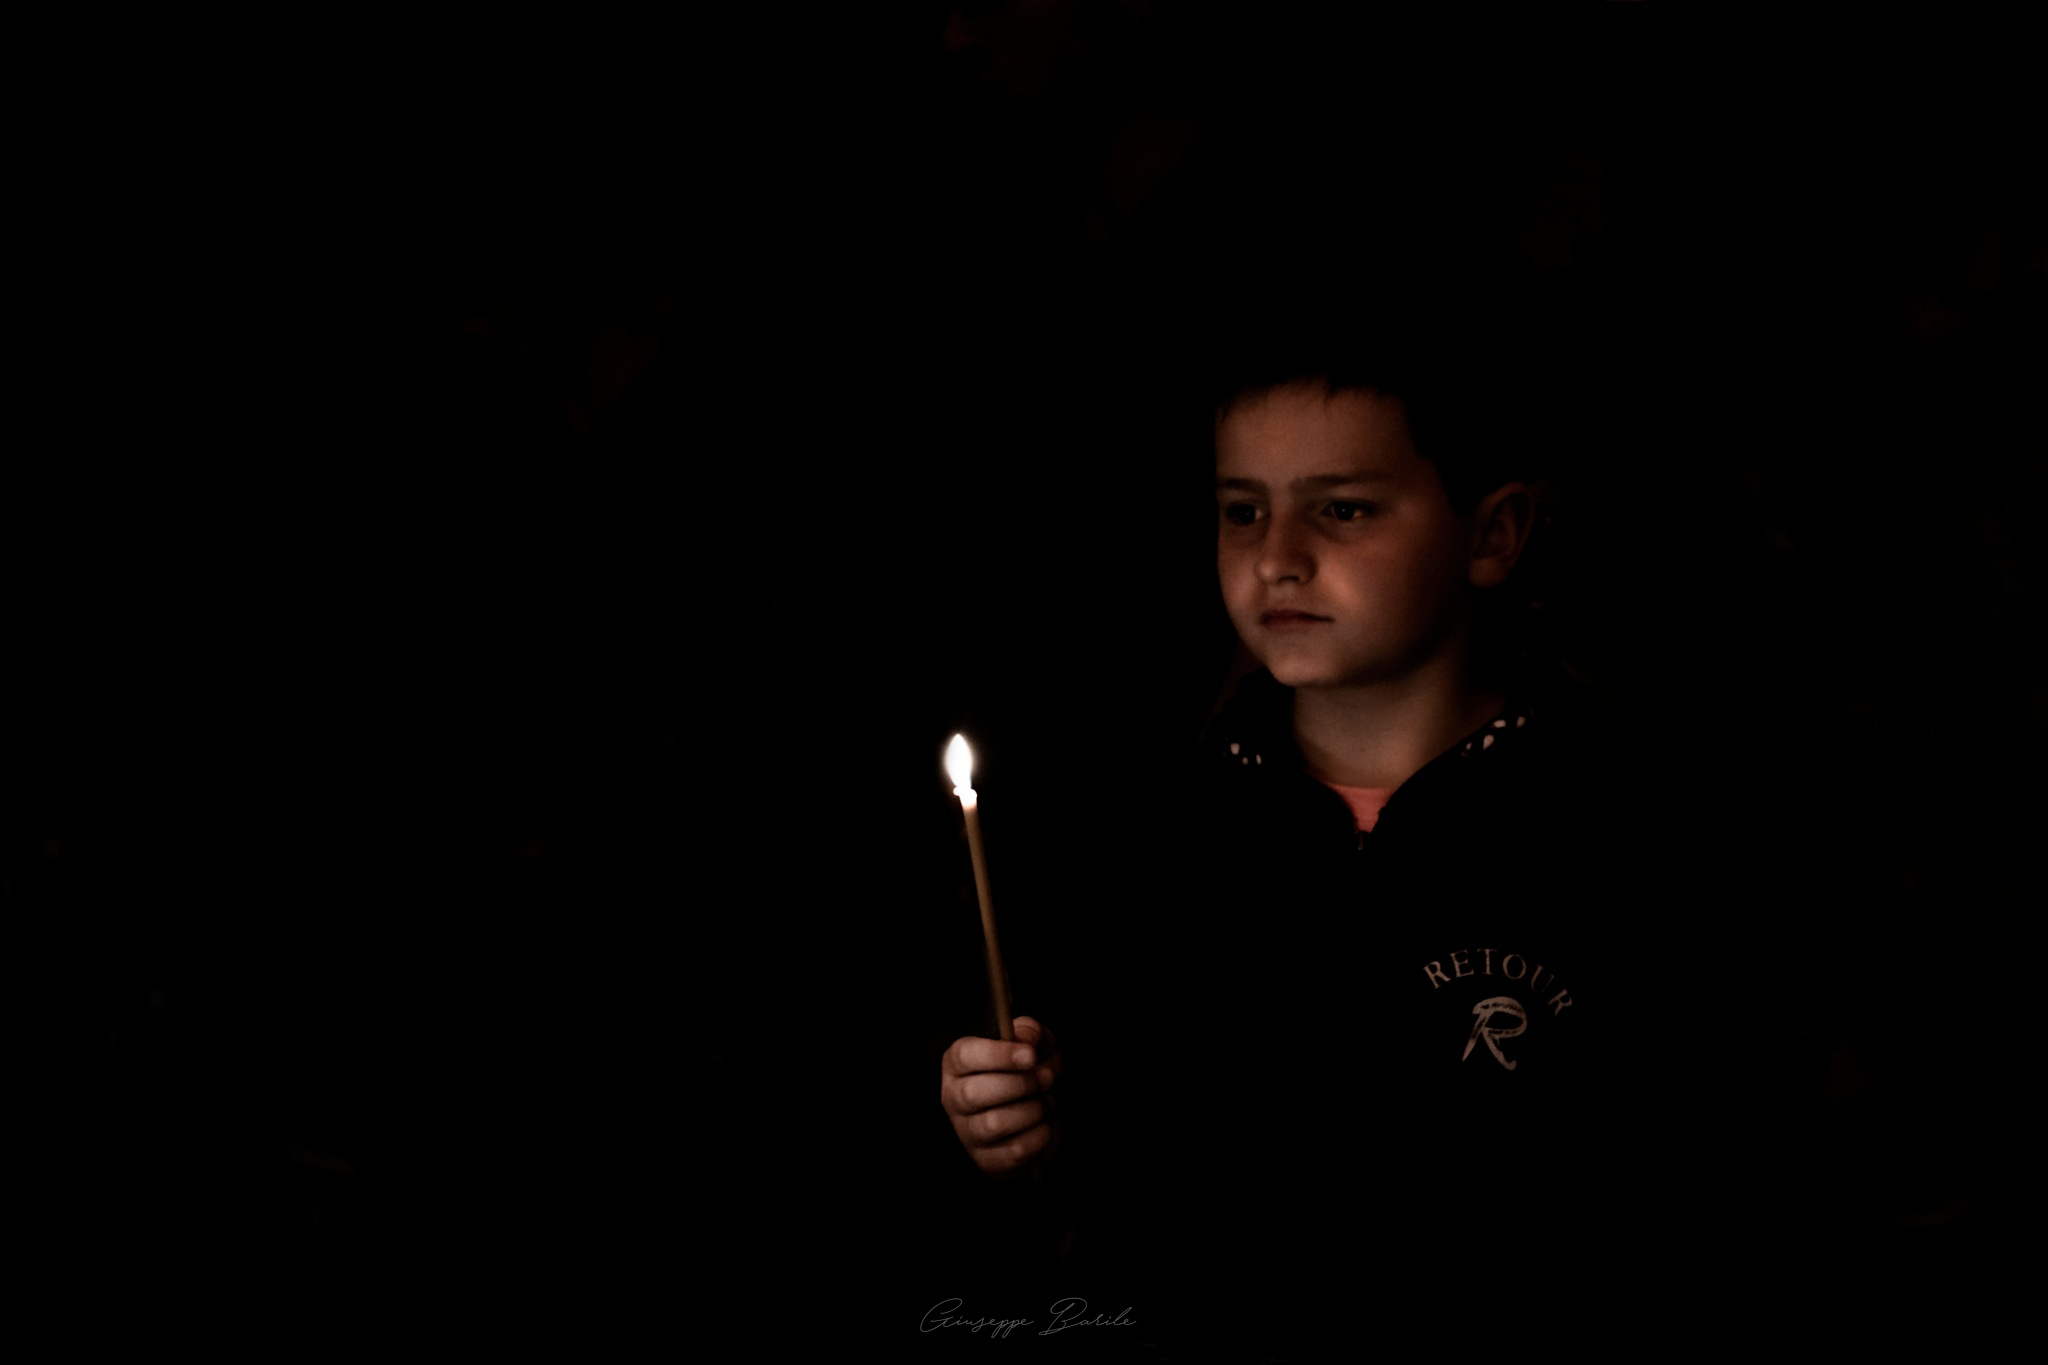 Baby's candle by Giuseppe Barile